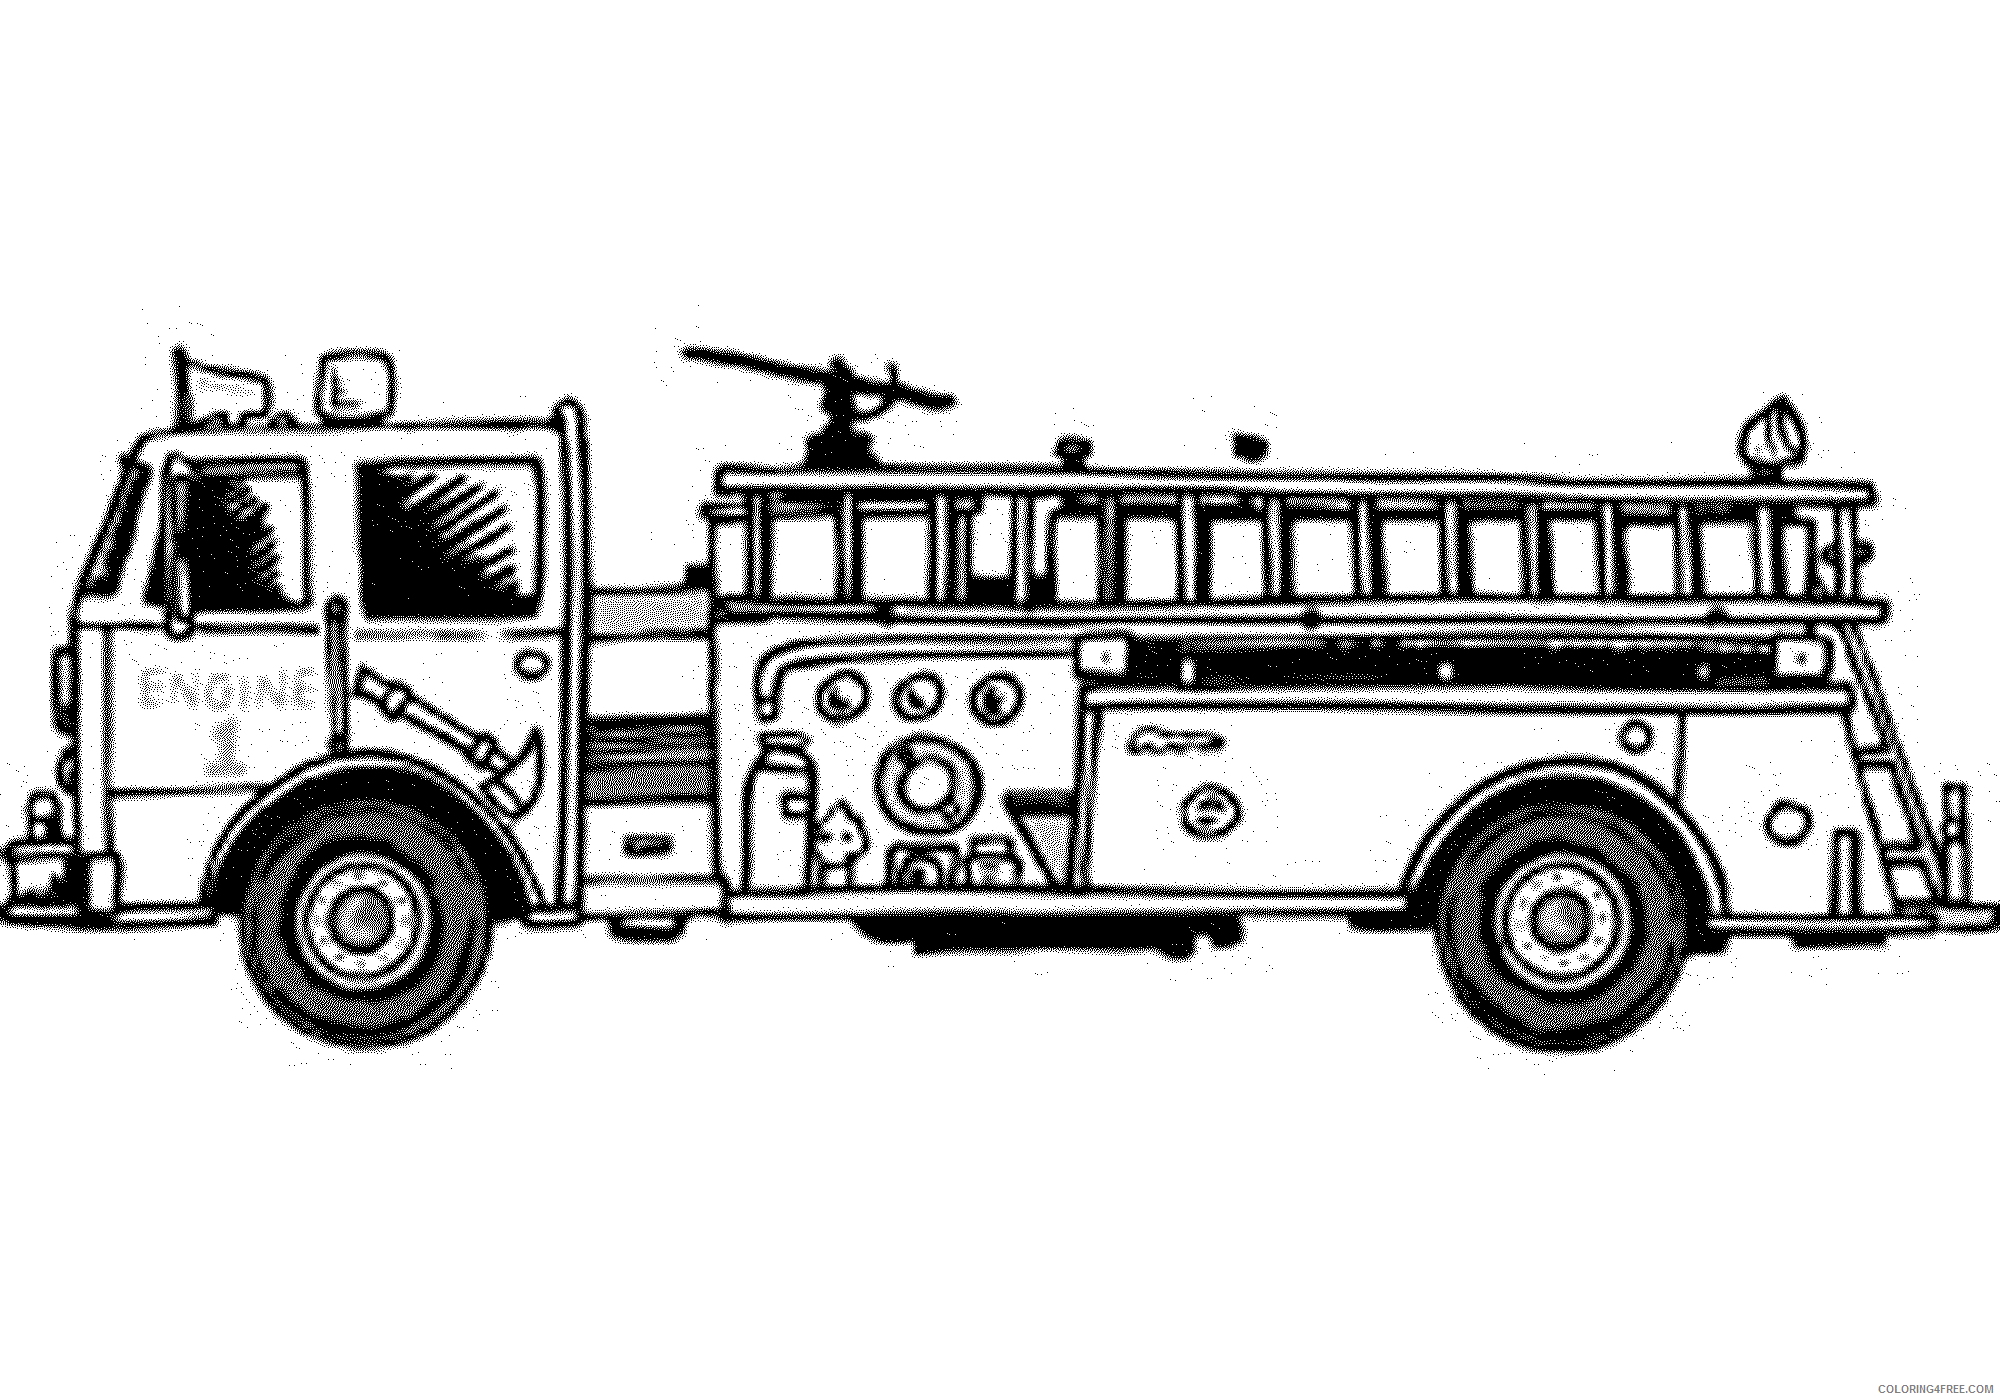 Firefighter Coloring Pages - Free Printables - MomJunction | 1400x2000